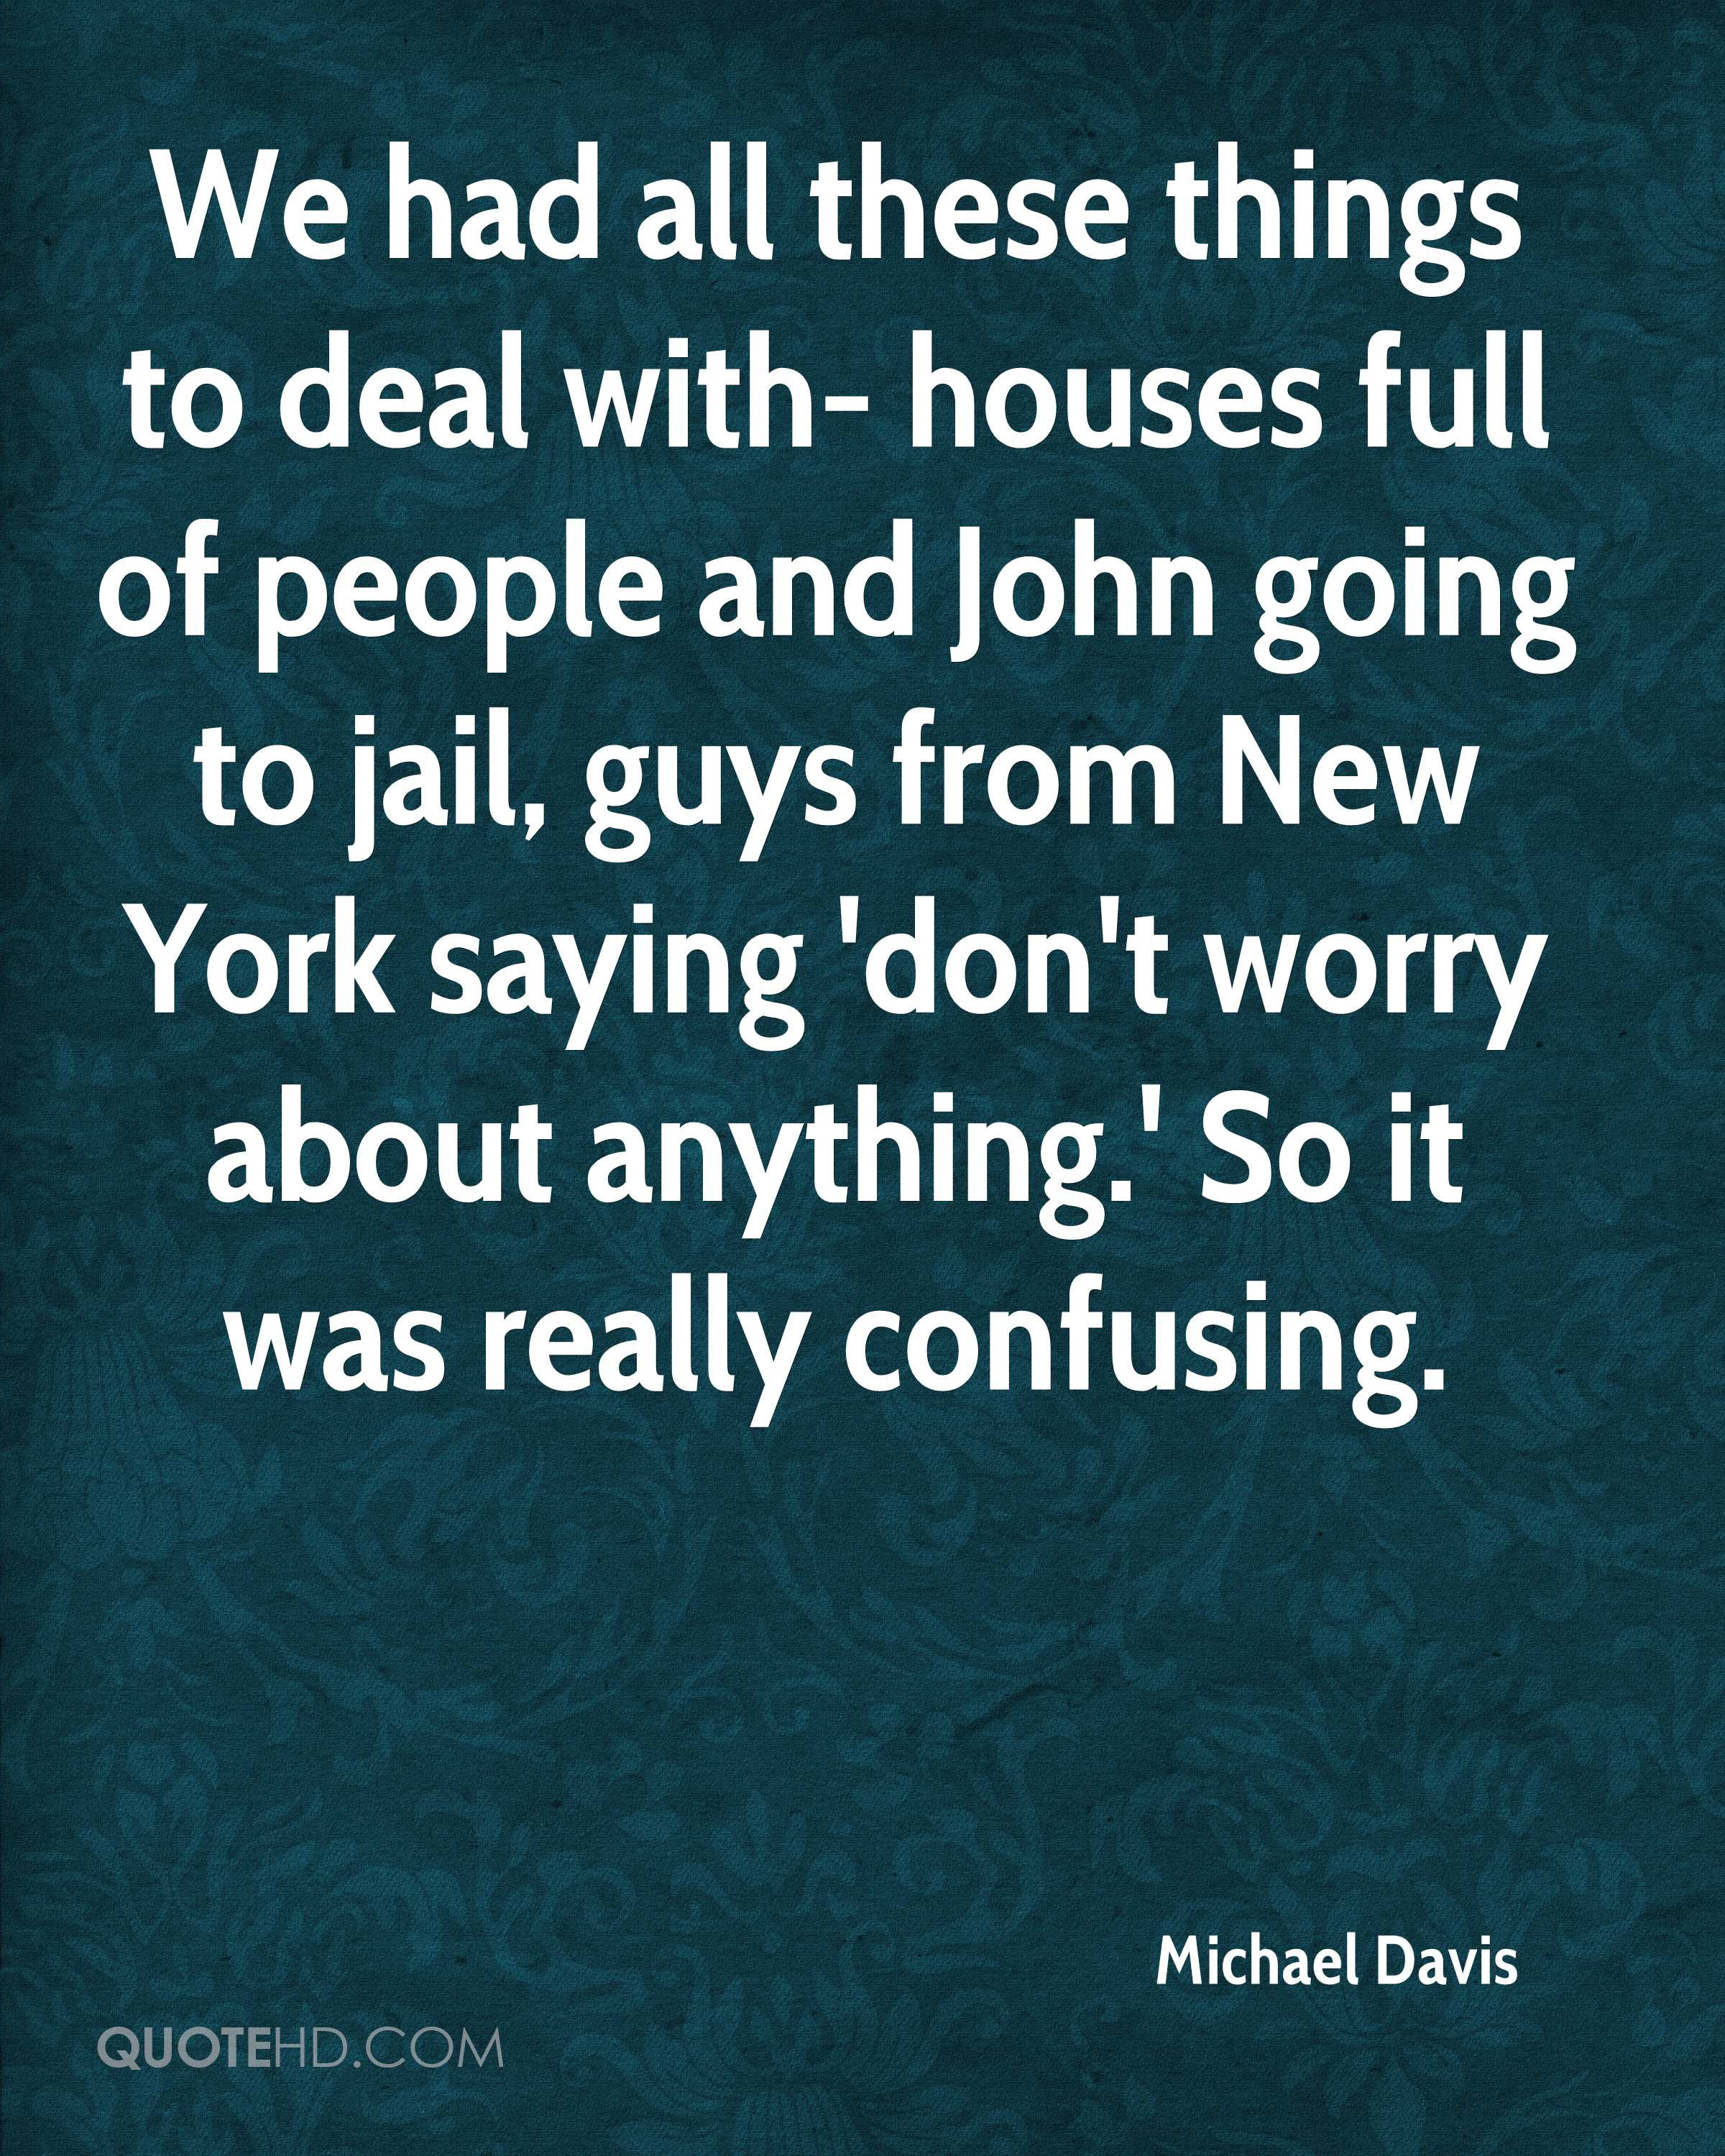 We had all these things to deal with- houses full of people and John going to jail, guys from New York saying 'don't worry about anything.' So it was really confusing.